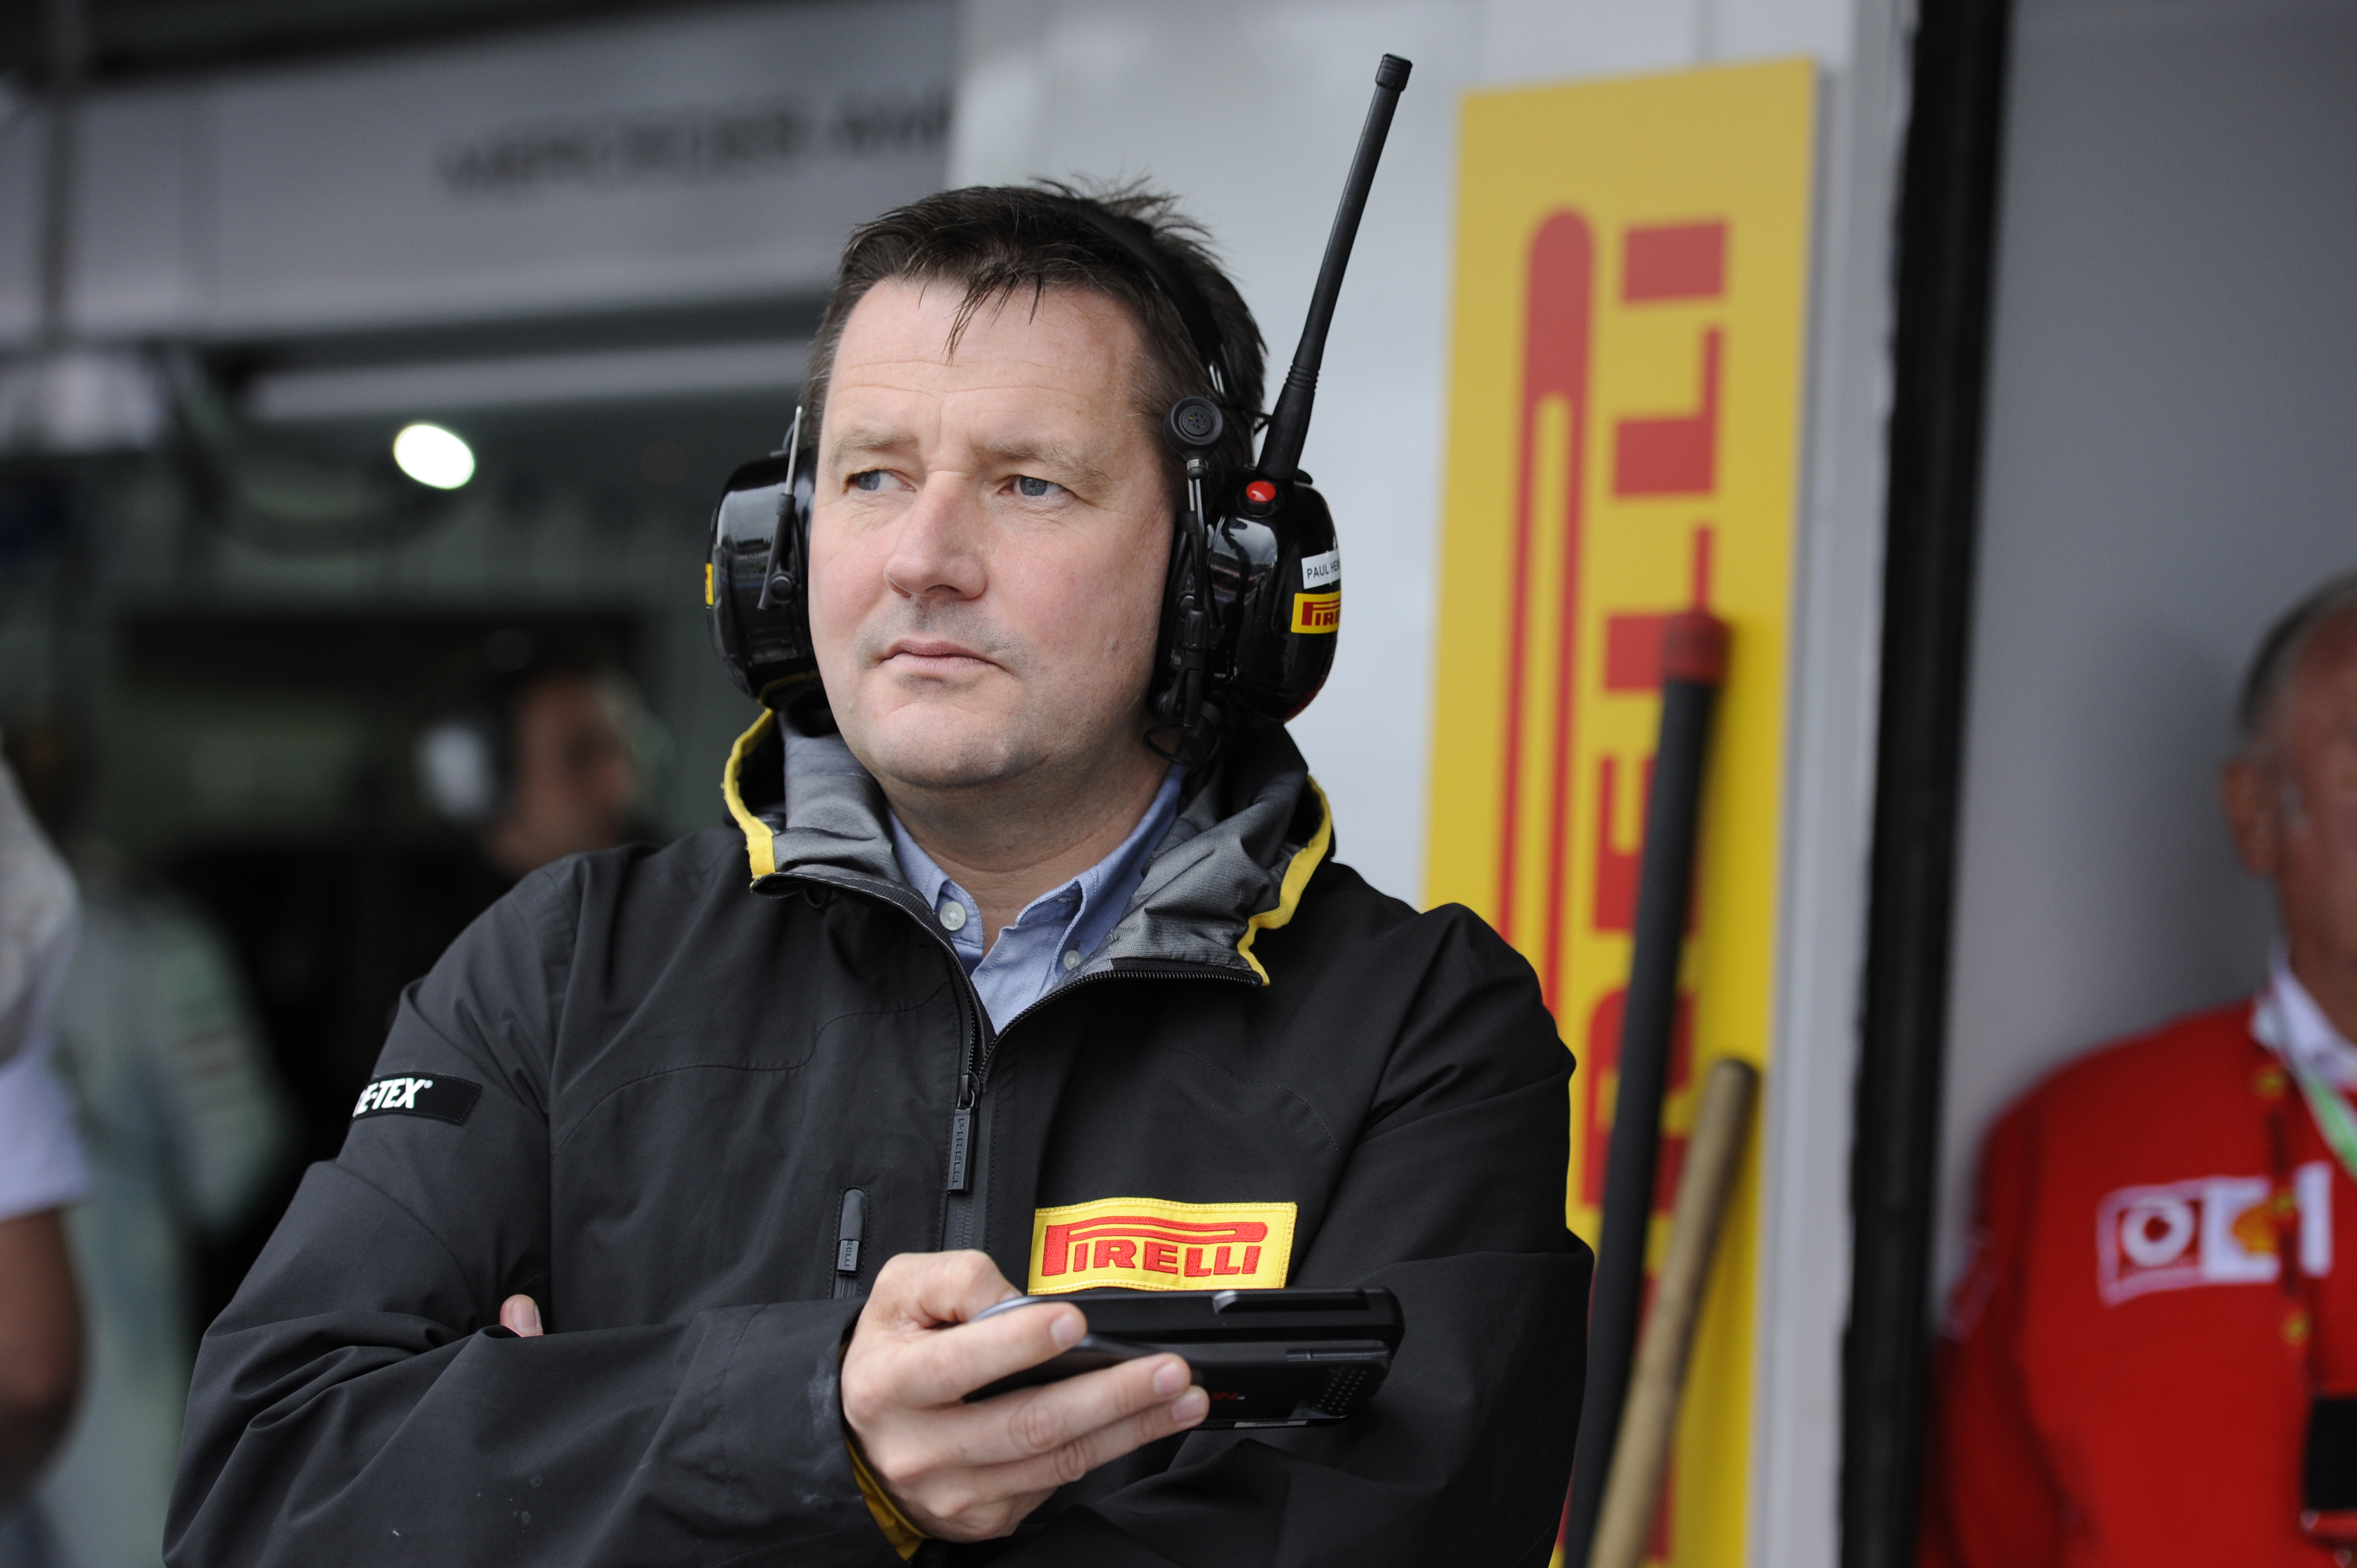 Back to warmer weather for Pirelli in Hungary